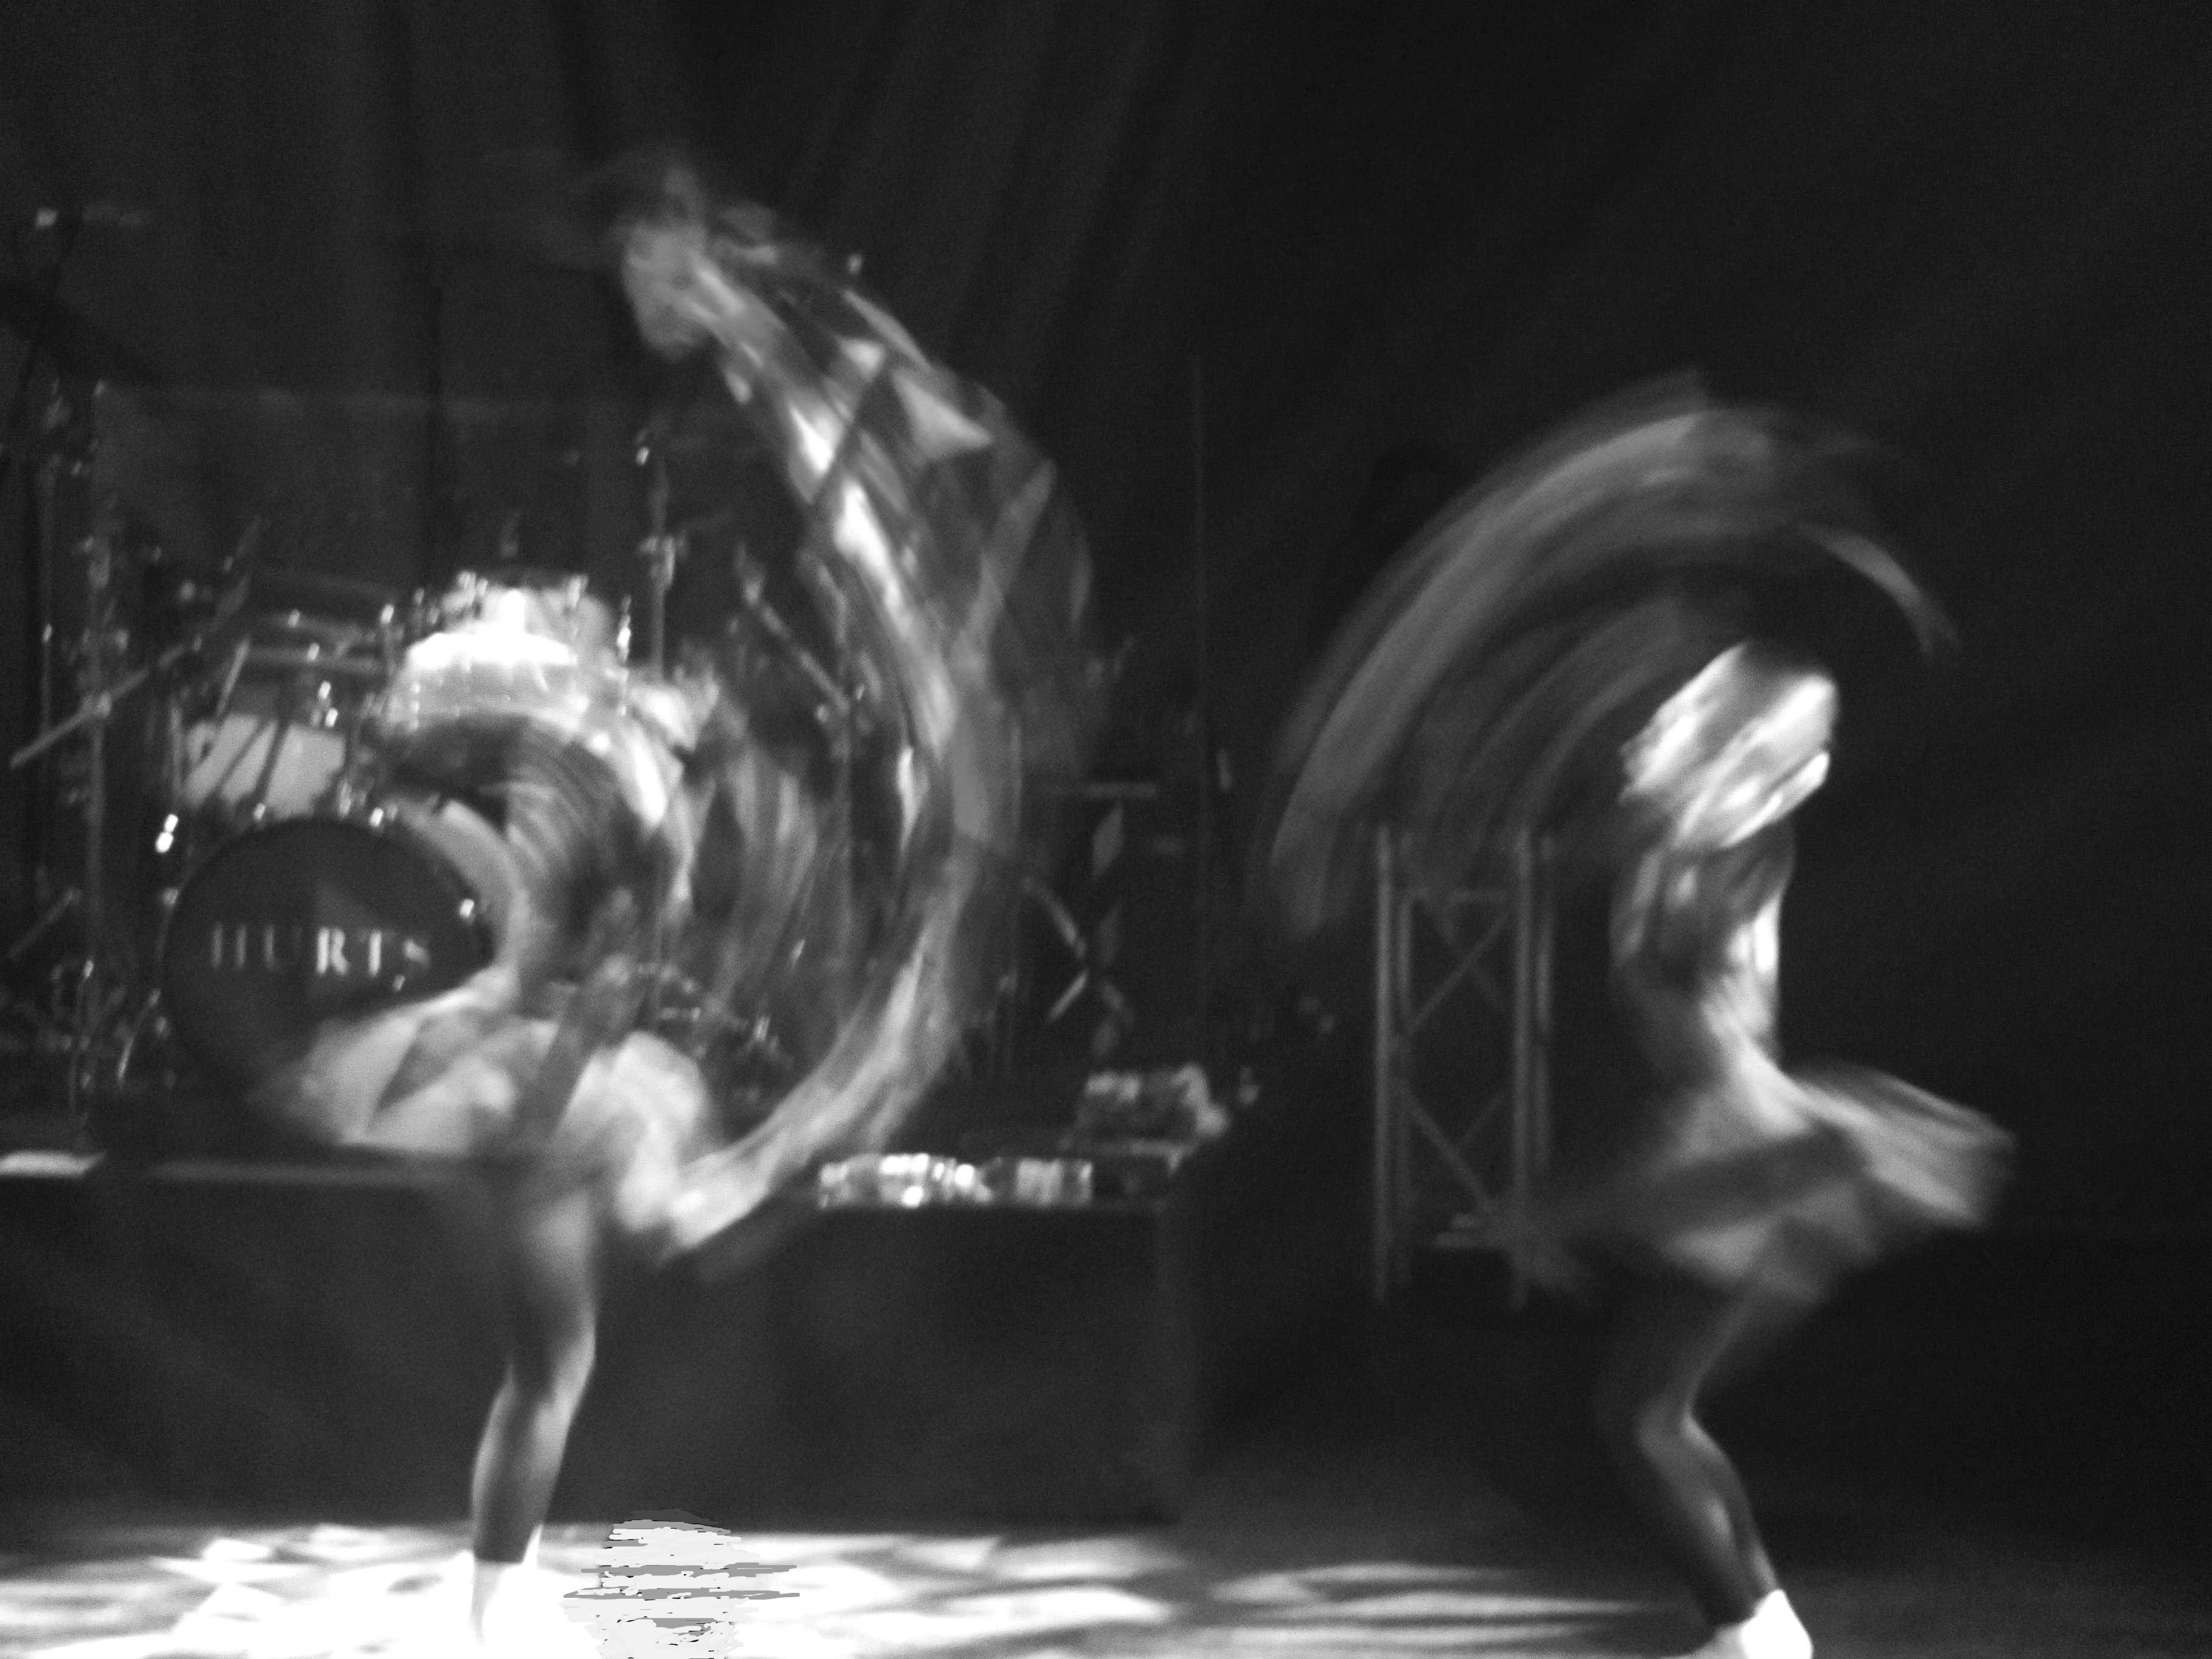 Dancer of HURTS, Avo Session Basel 2011, by me.